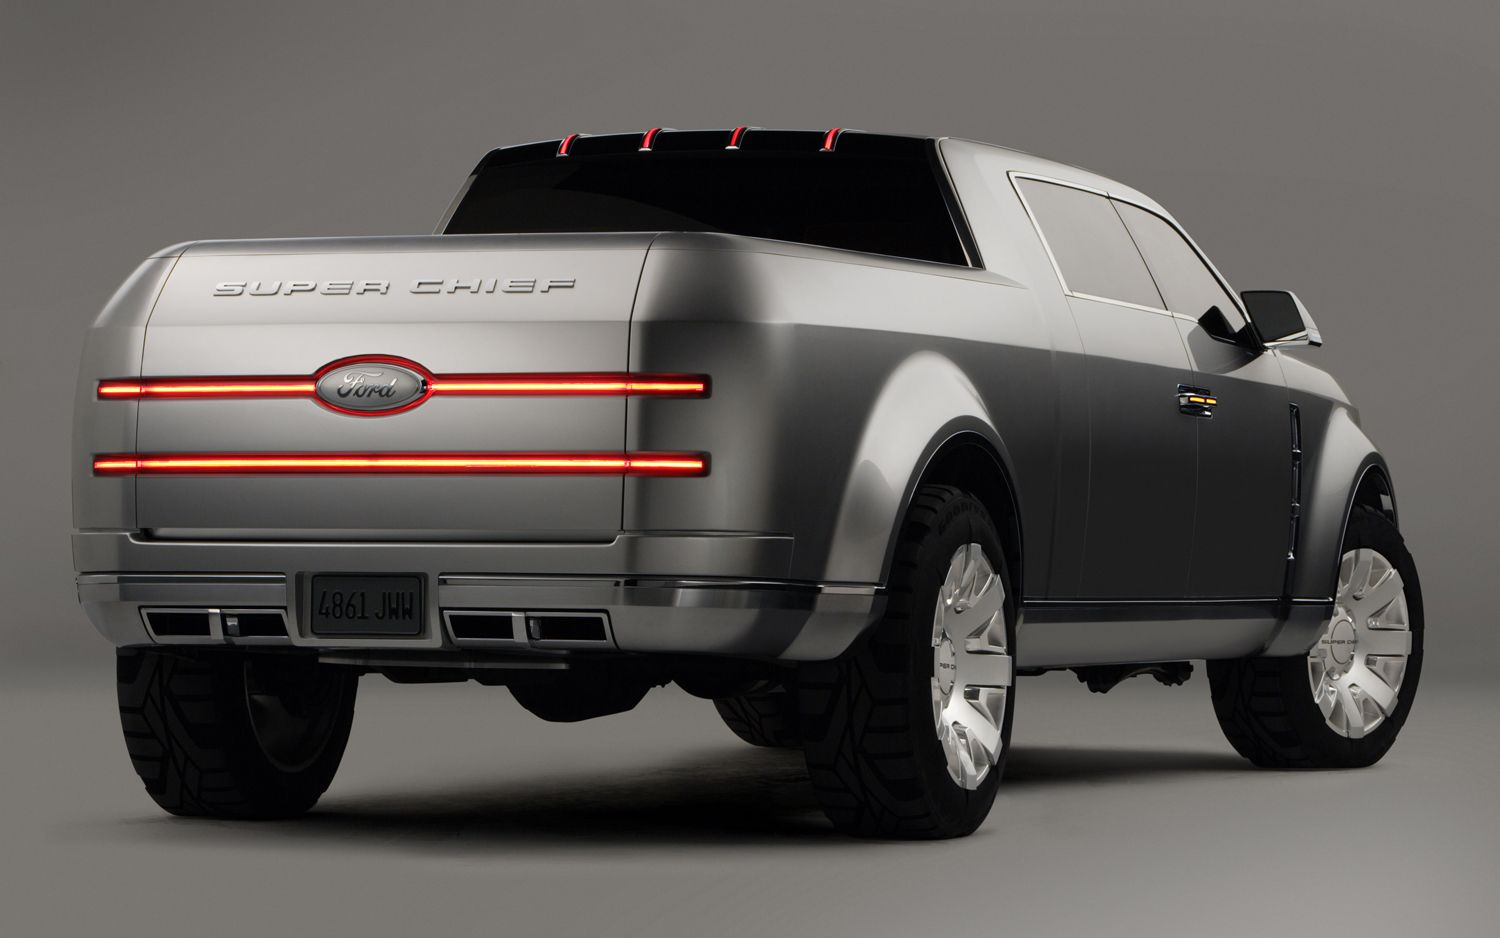 Ford concept Truck  Things We Find Interesting  Pinterest  Ford